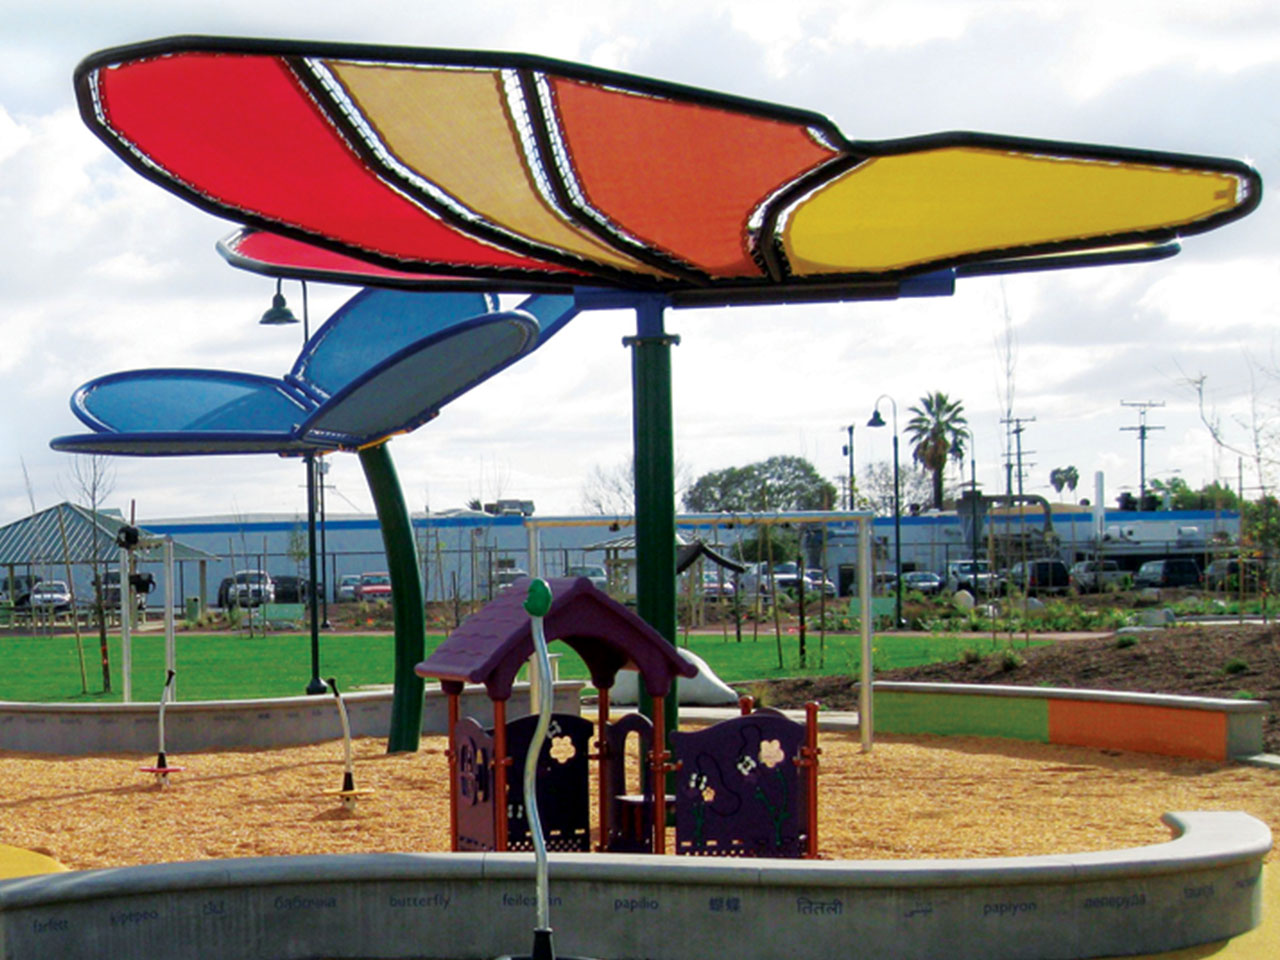 Custom Shade for Parks - Gibson Mariposa Park